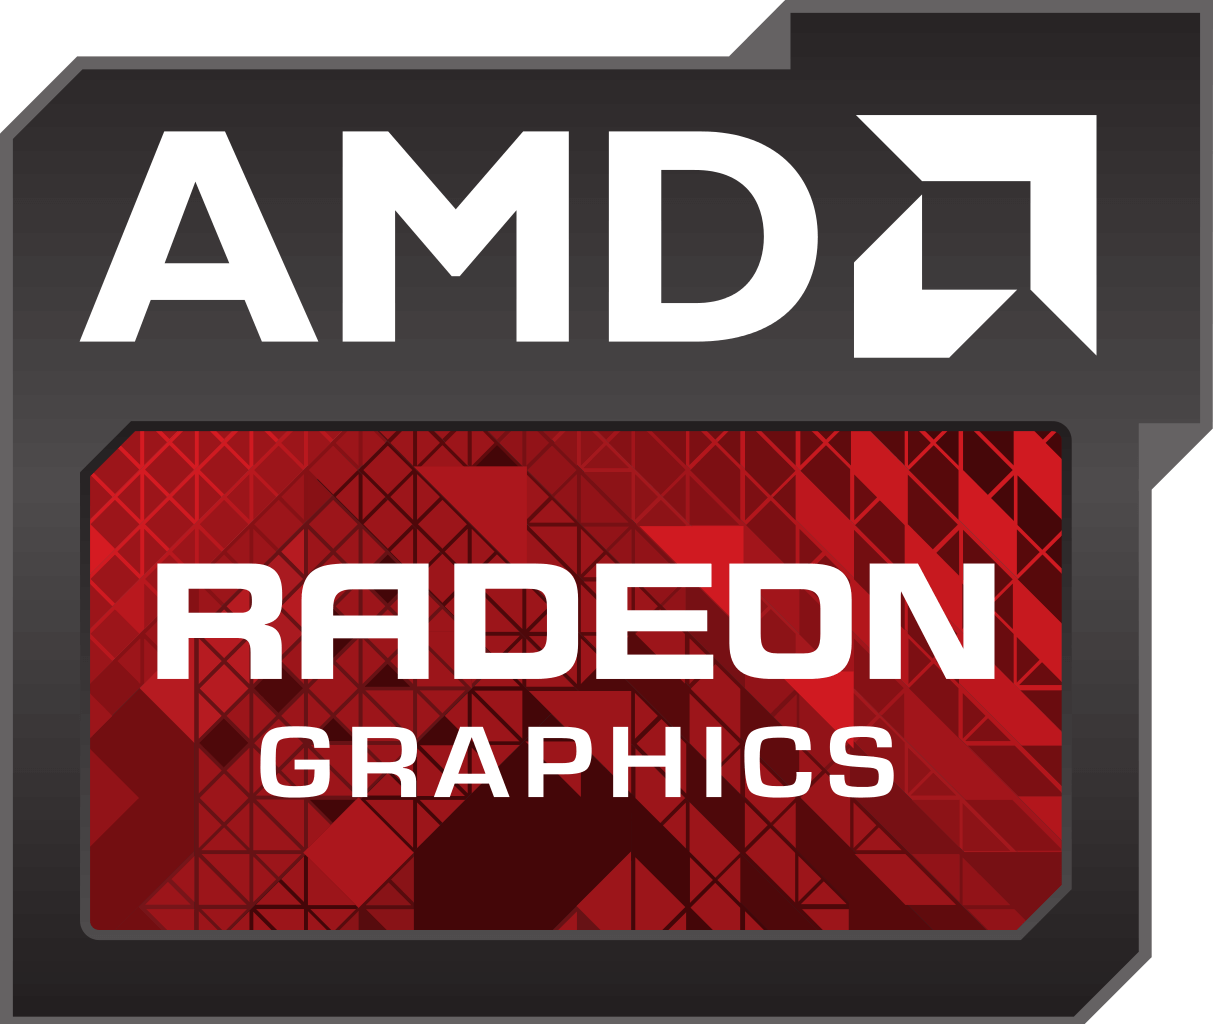 AMD_Radeon_graphics_logo_2014.svg.png